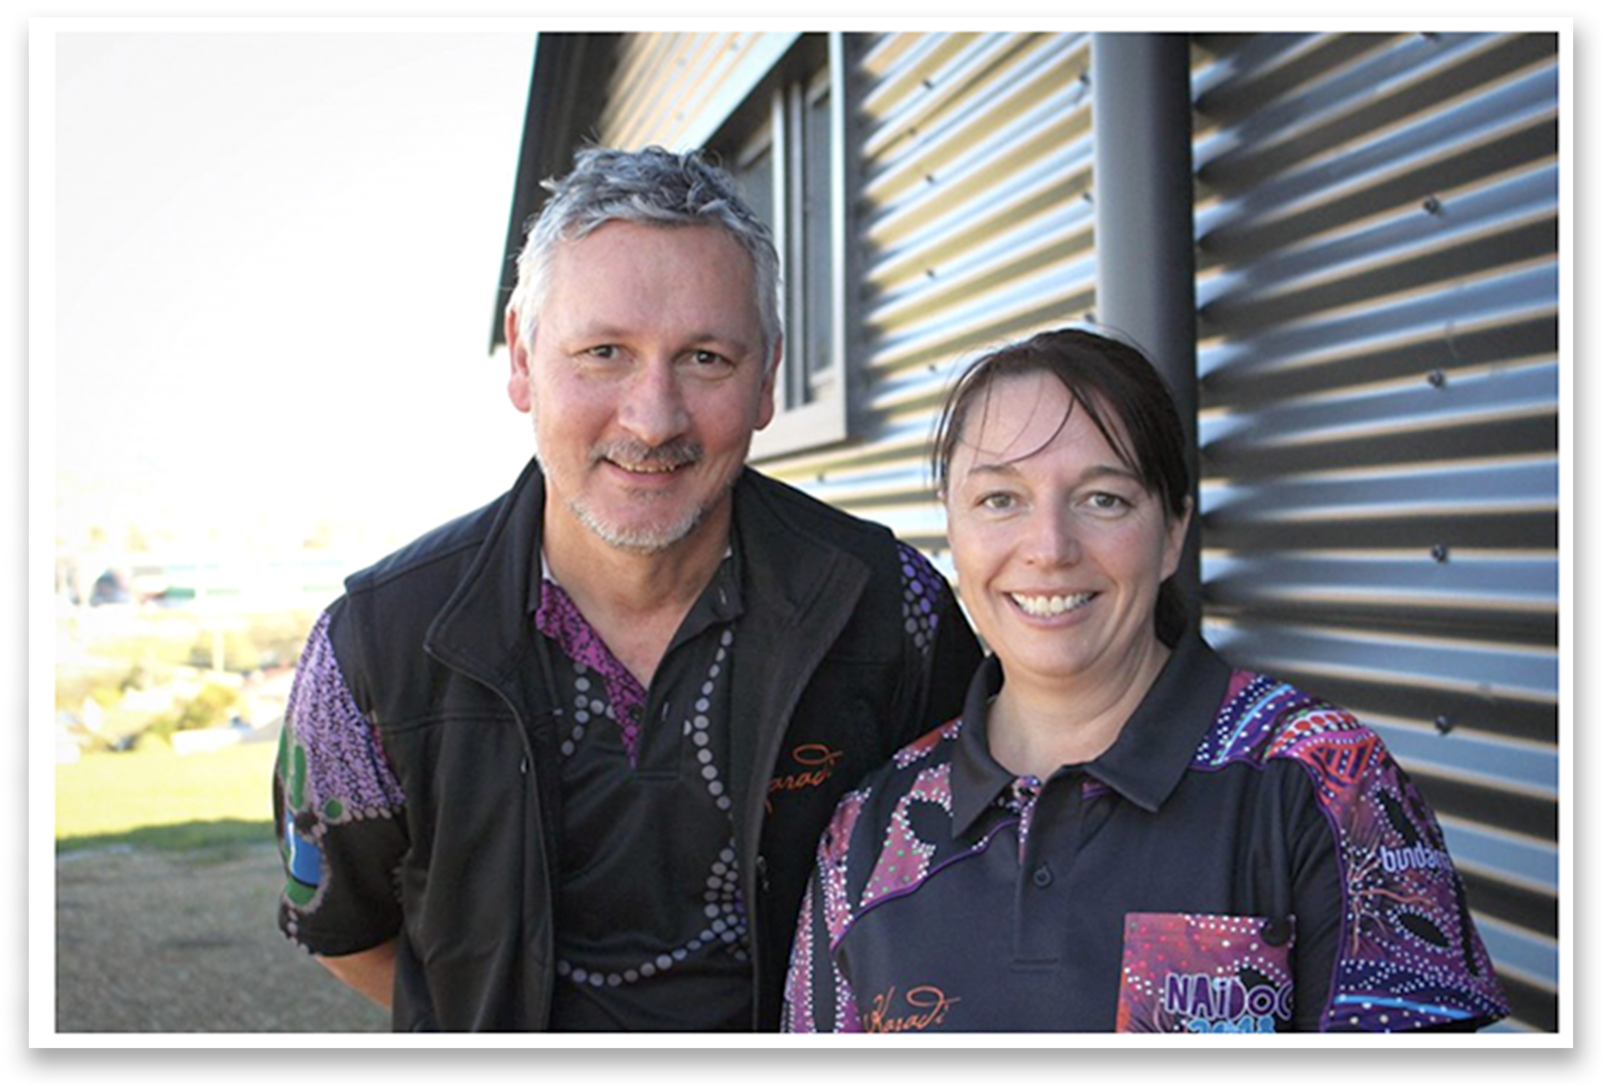 image featuring marc hicks and emma robertson